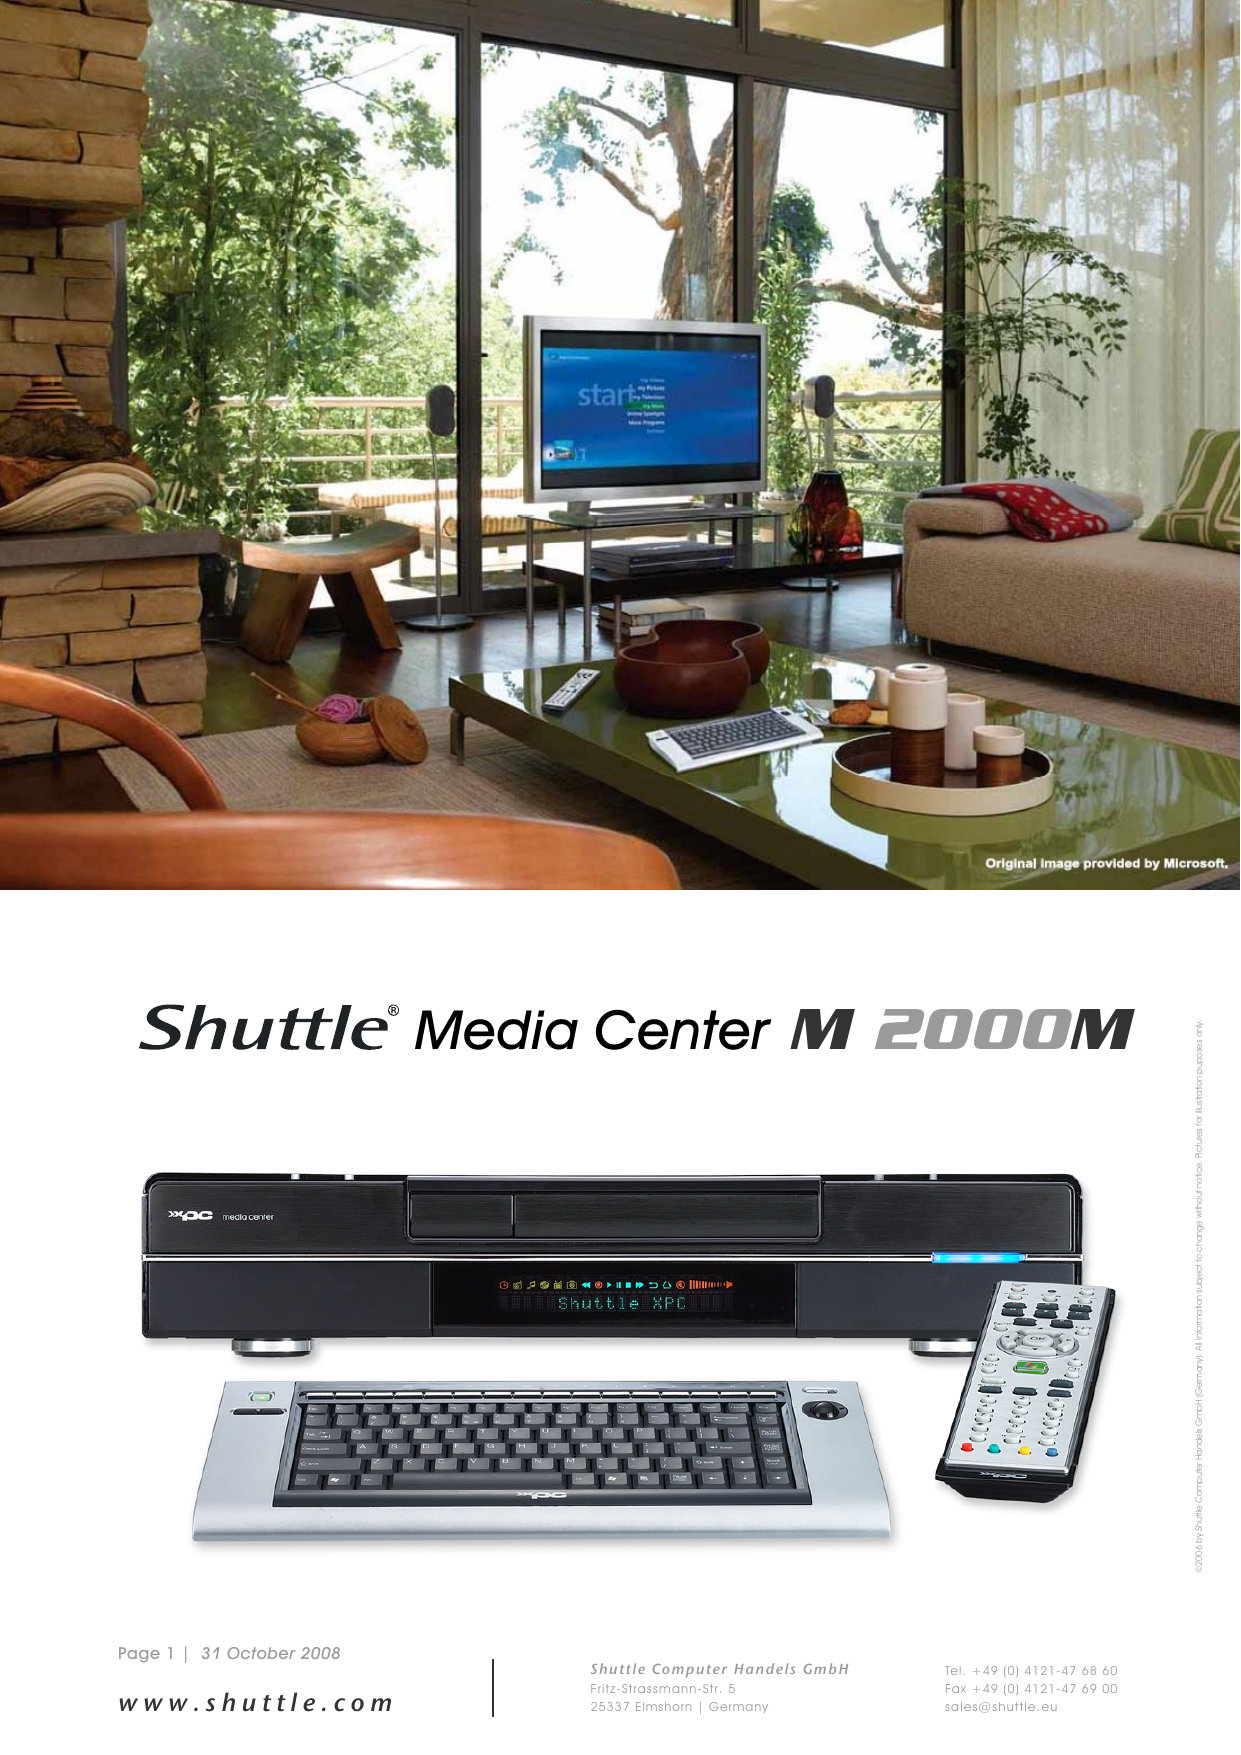 Shuttle Computer Group Media Center M 2000M Users Manual